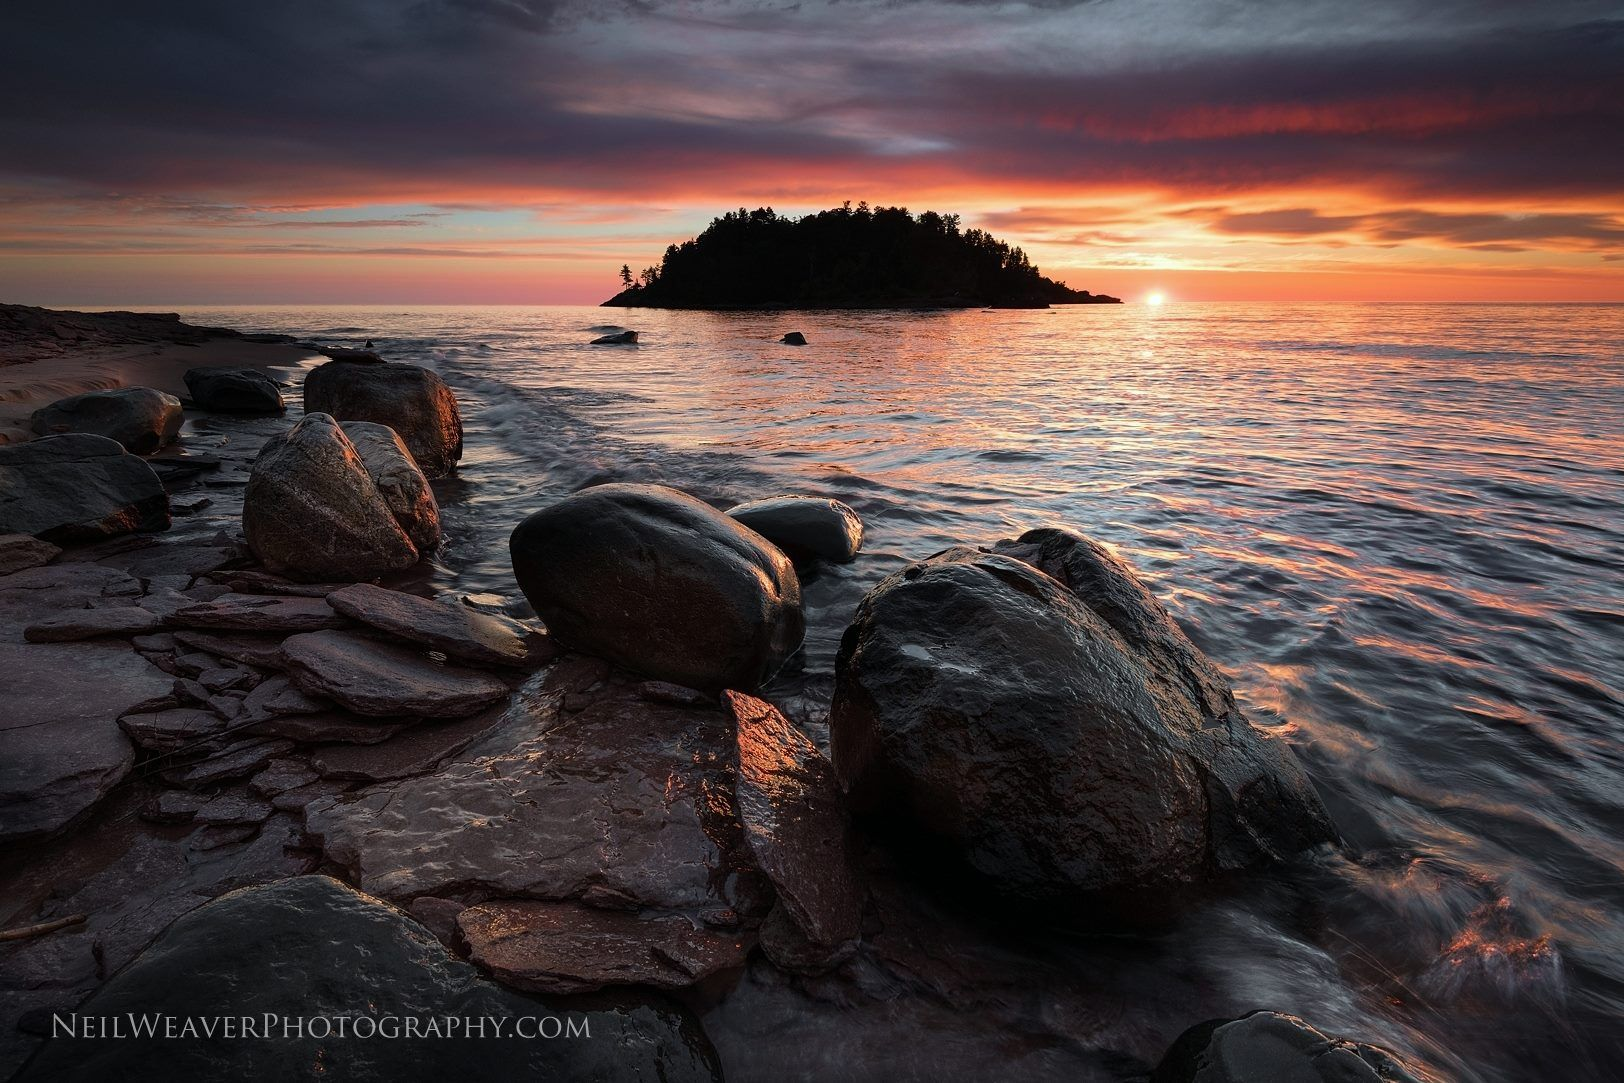 Sunrise at Little Presque Isle Point, photo by Neil Weaver Photography The Michigan Department of Natural Resources says in part about a proposed Little Presque Isle Natural Area: The Little Presqu…